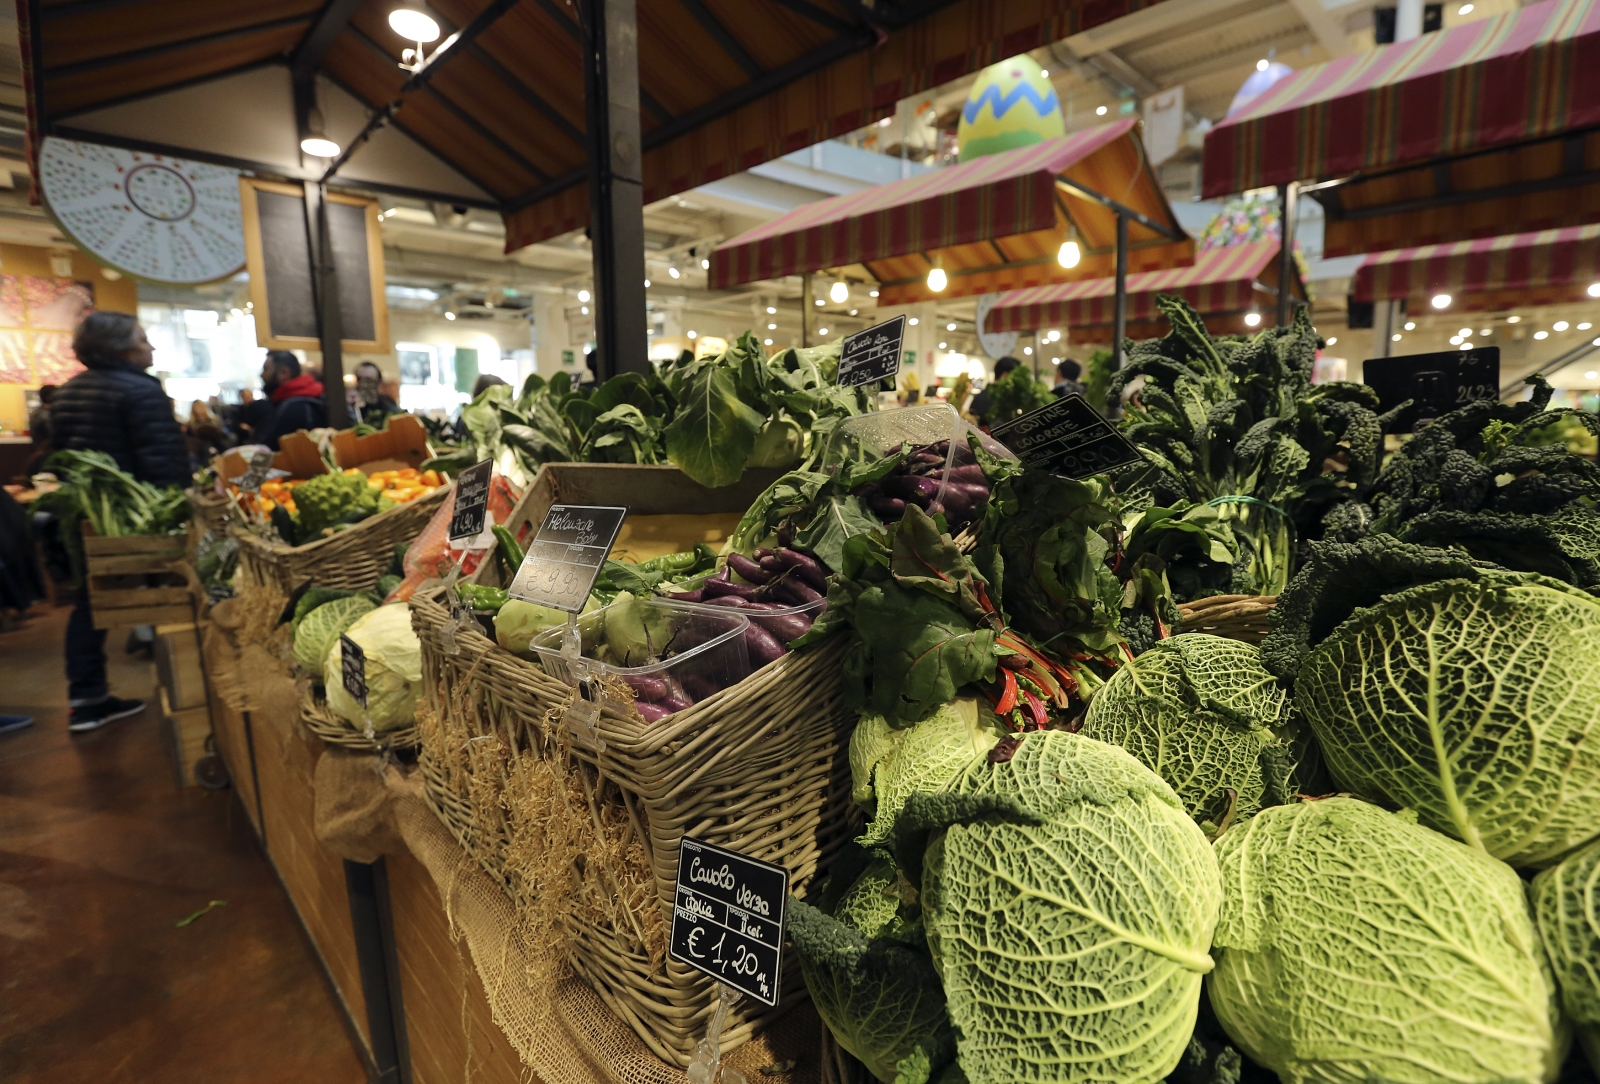 Vegetables at a market in Milan, Italy